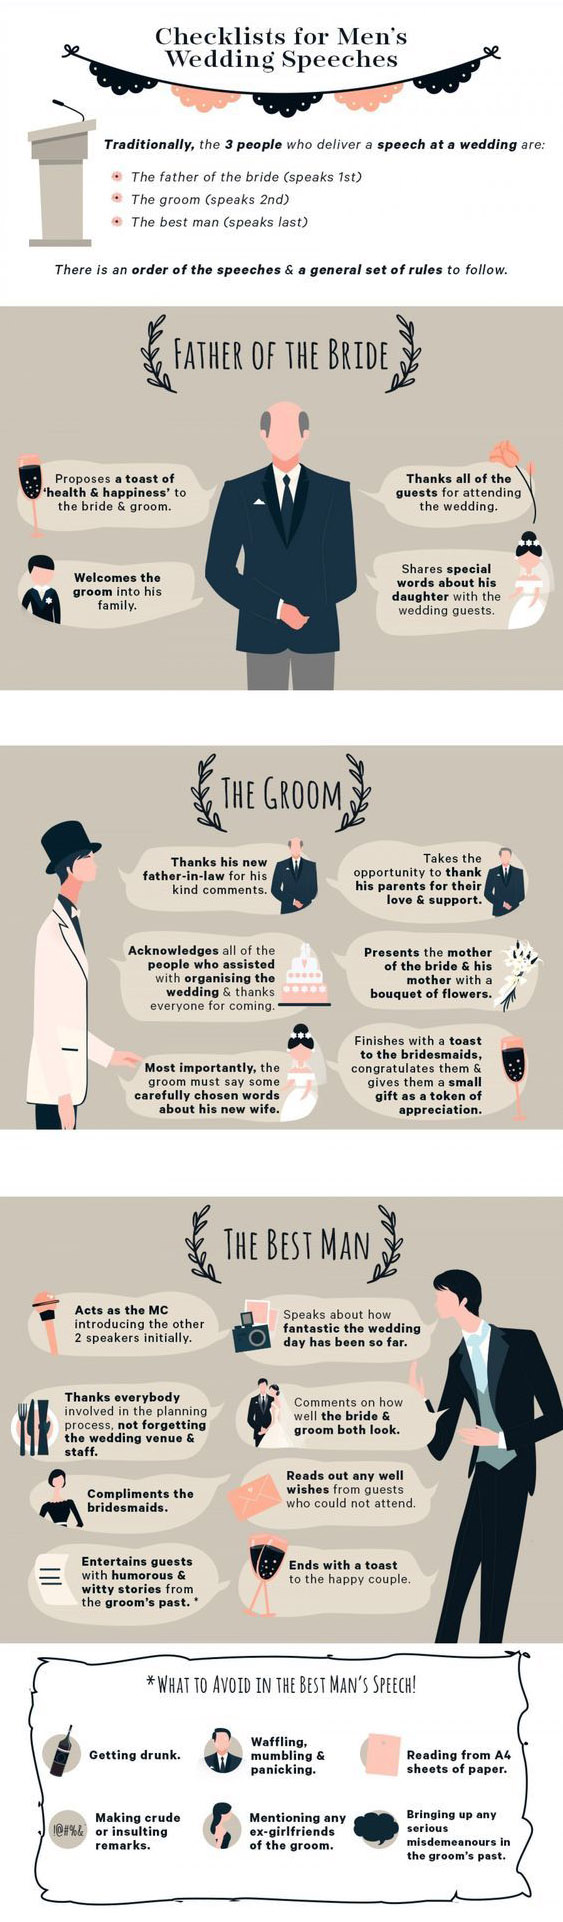 Wedding Speeches 101 - Ultimate Guide to a Great Wedding Speech!